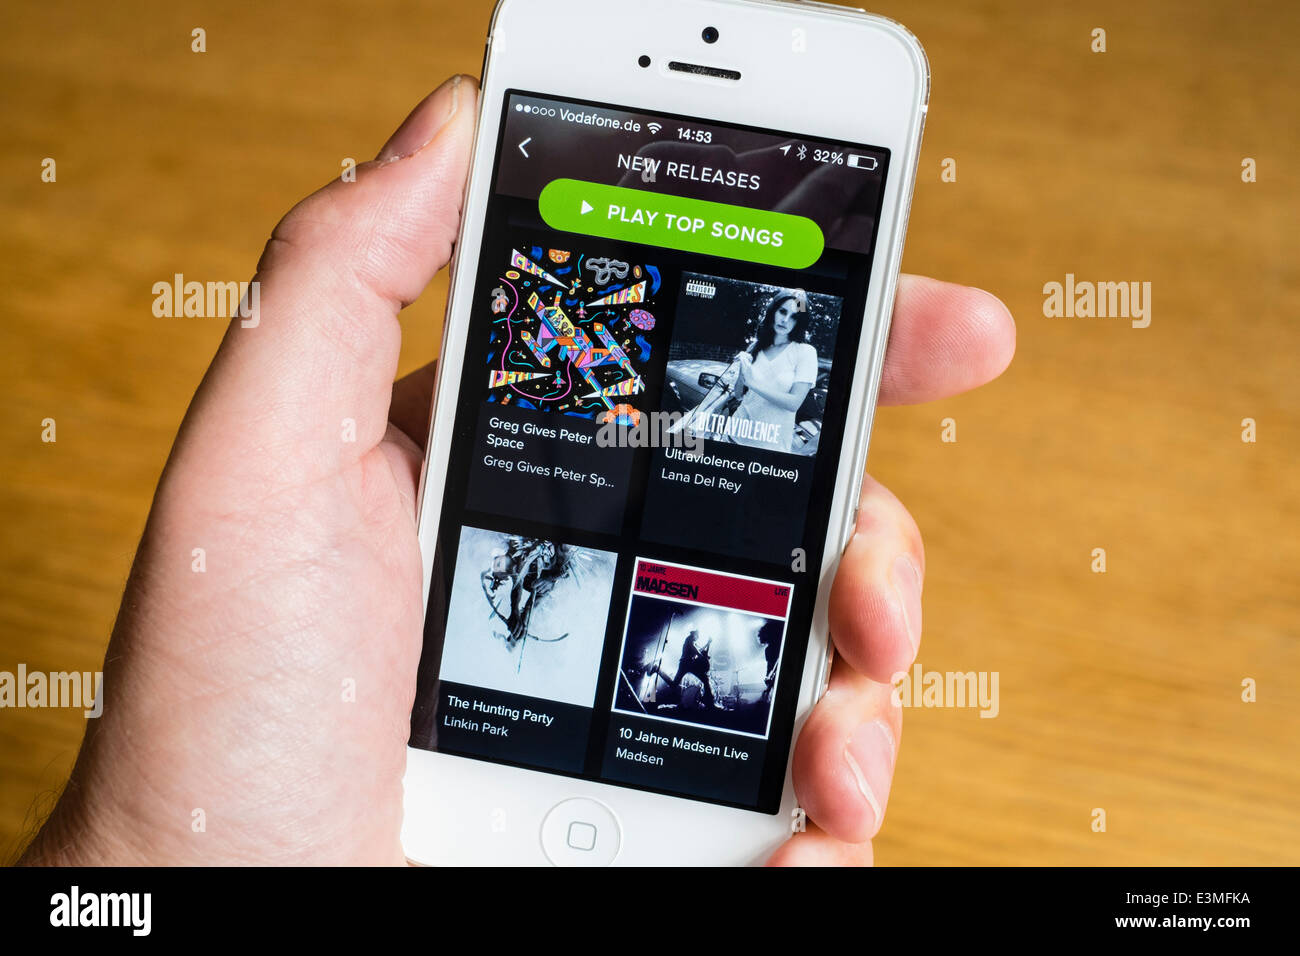 Détail de musique en streaming Spotify sur l'iPhone app smart phone Photo Stock